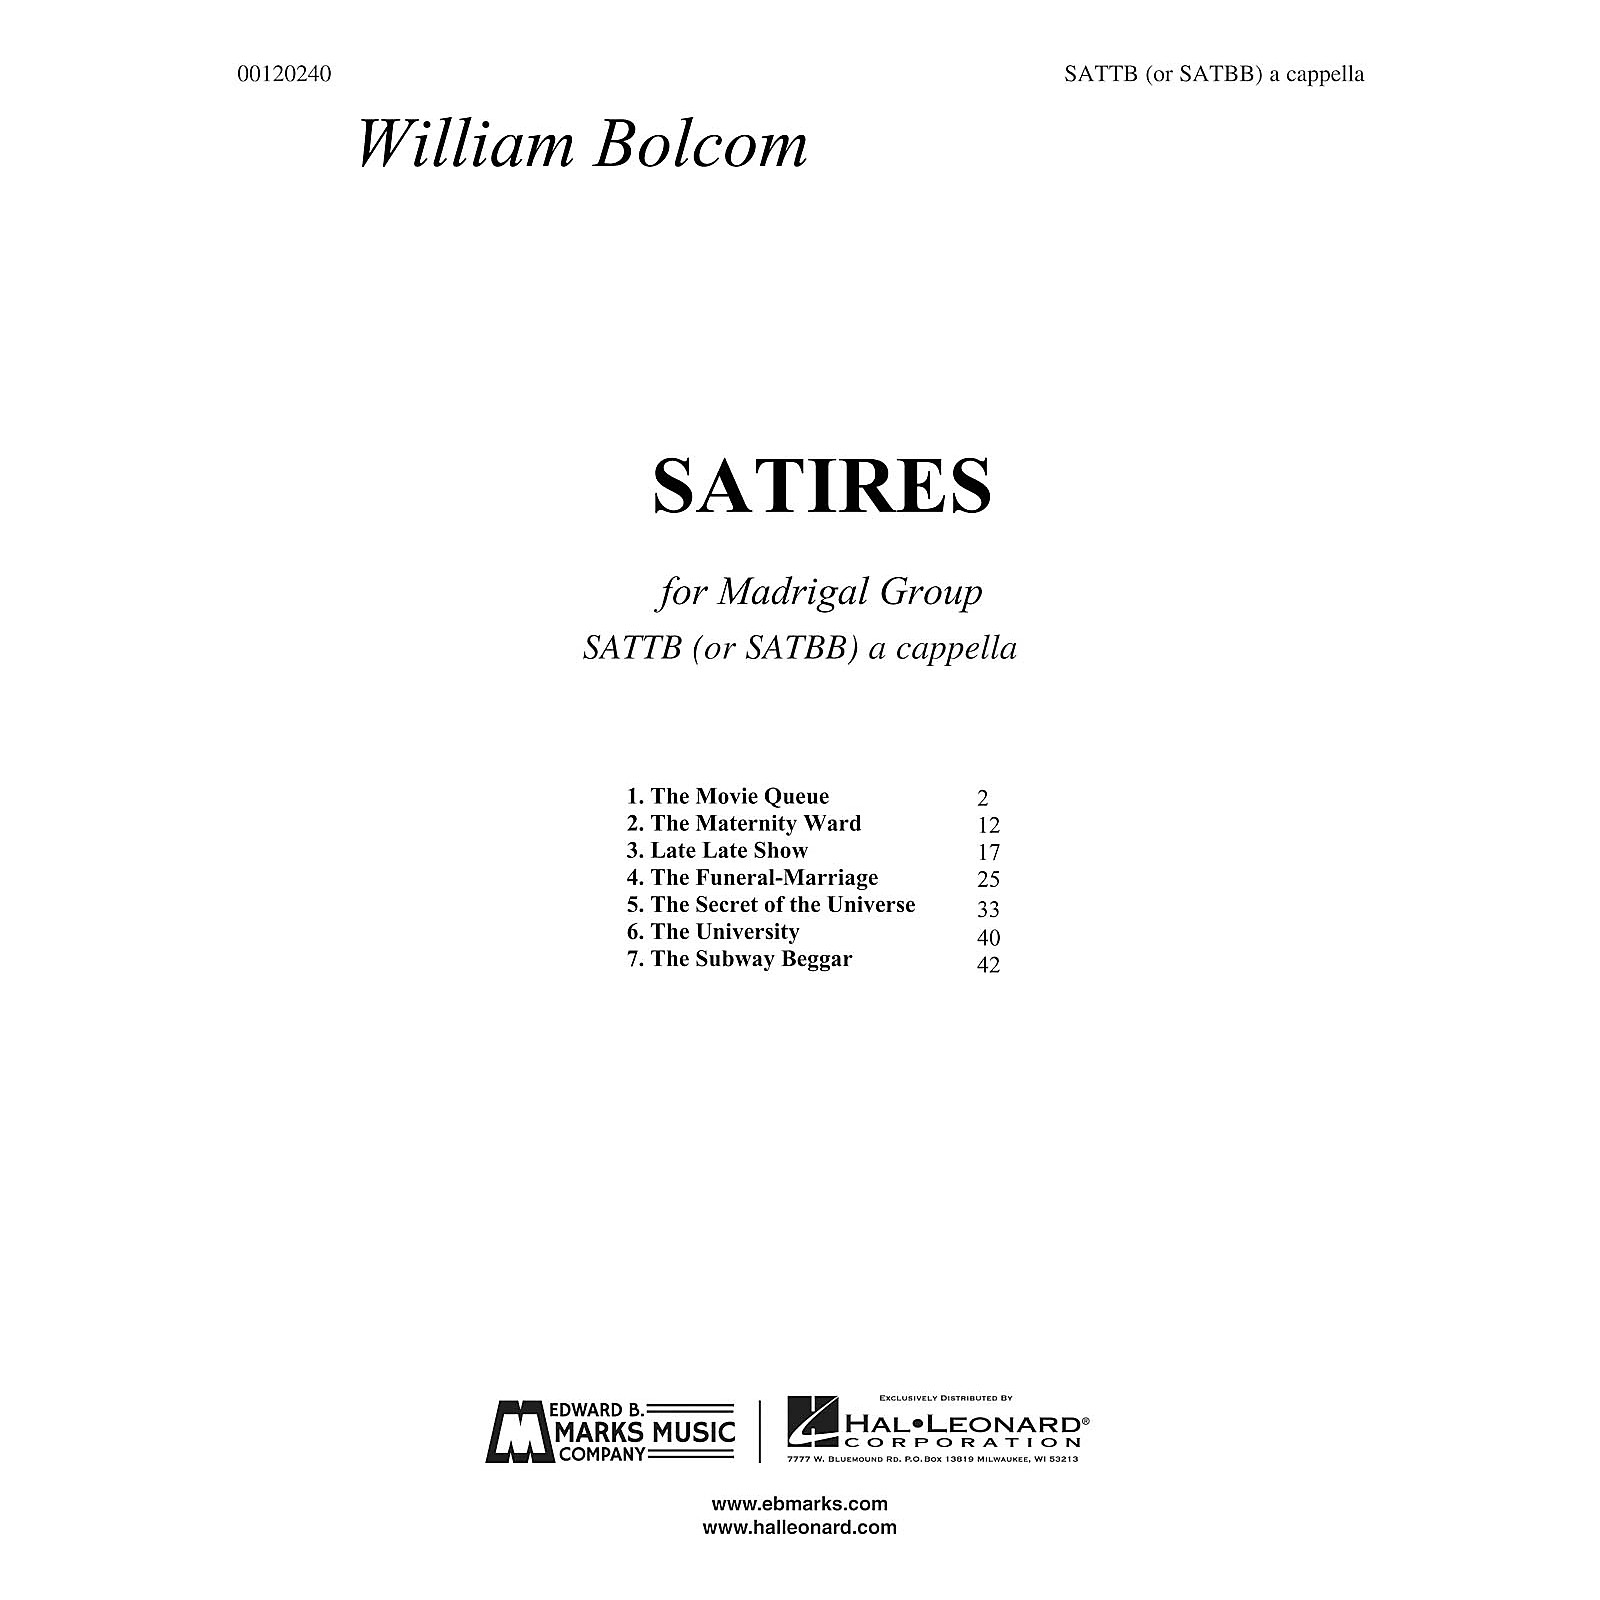 Edward B. Marks Music Company Satires (SATB Madrigal Group A Cappella) SATTB A CAPPELLA Composed by William Bolcom